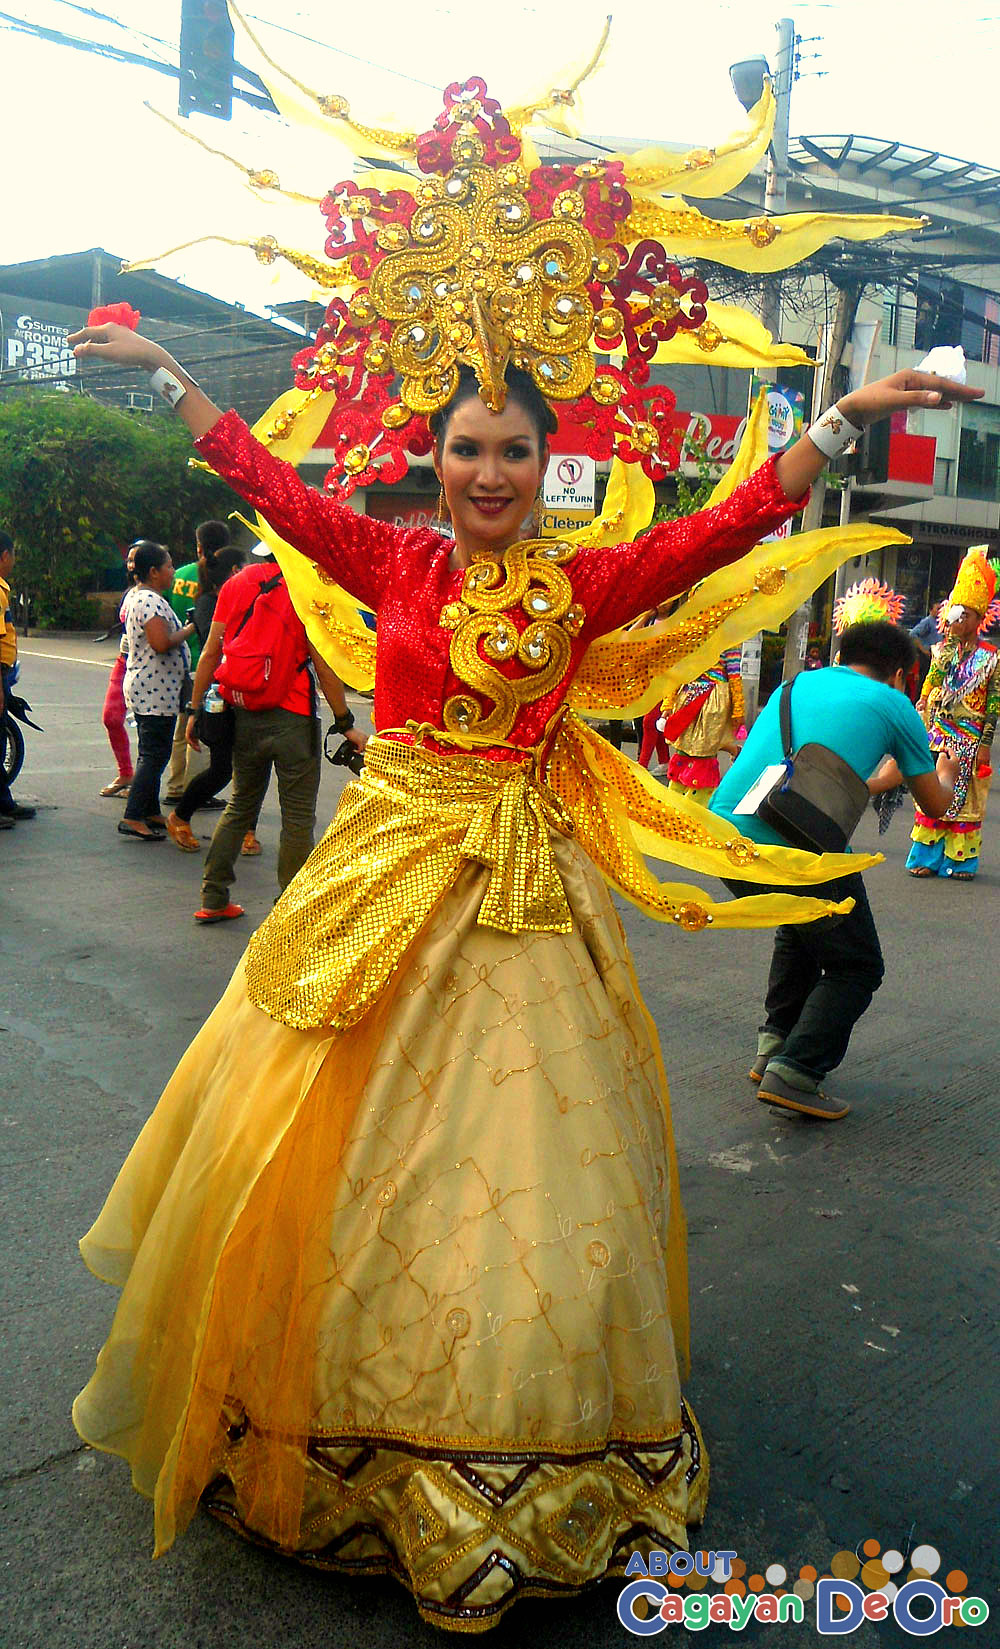 Macasandig National High School Carnival Queen - Cagayan de Oro Carnival Parade 2015